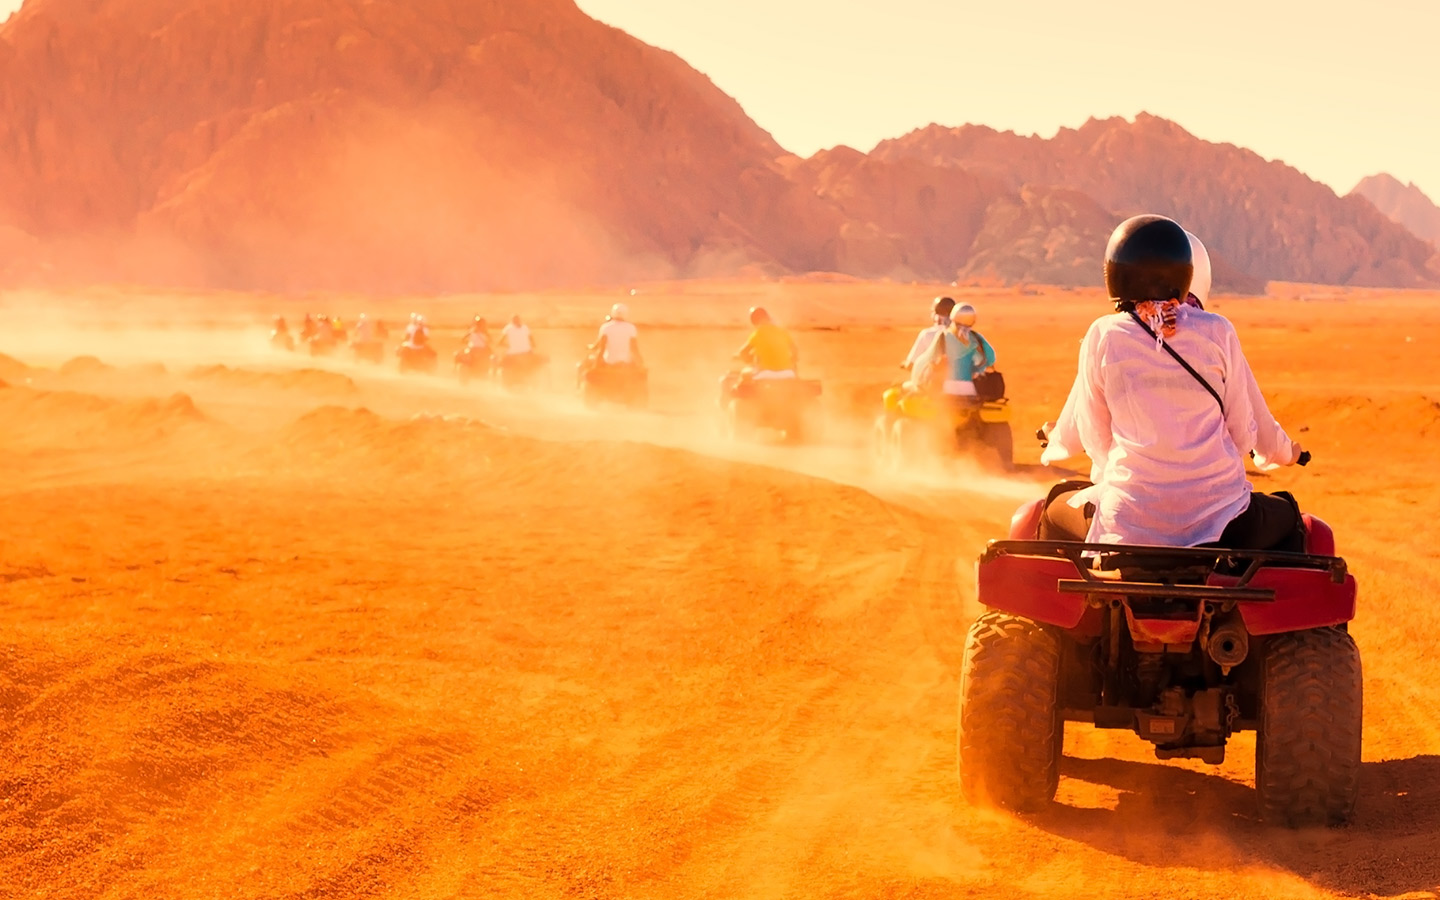 Biking is one of the favorite activities for many people who prefer to take part in safaris